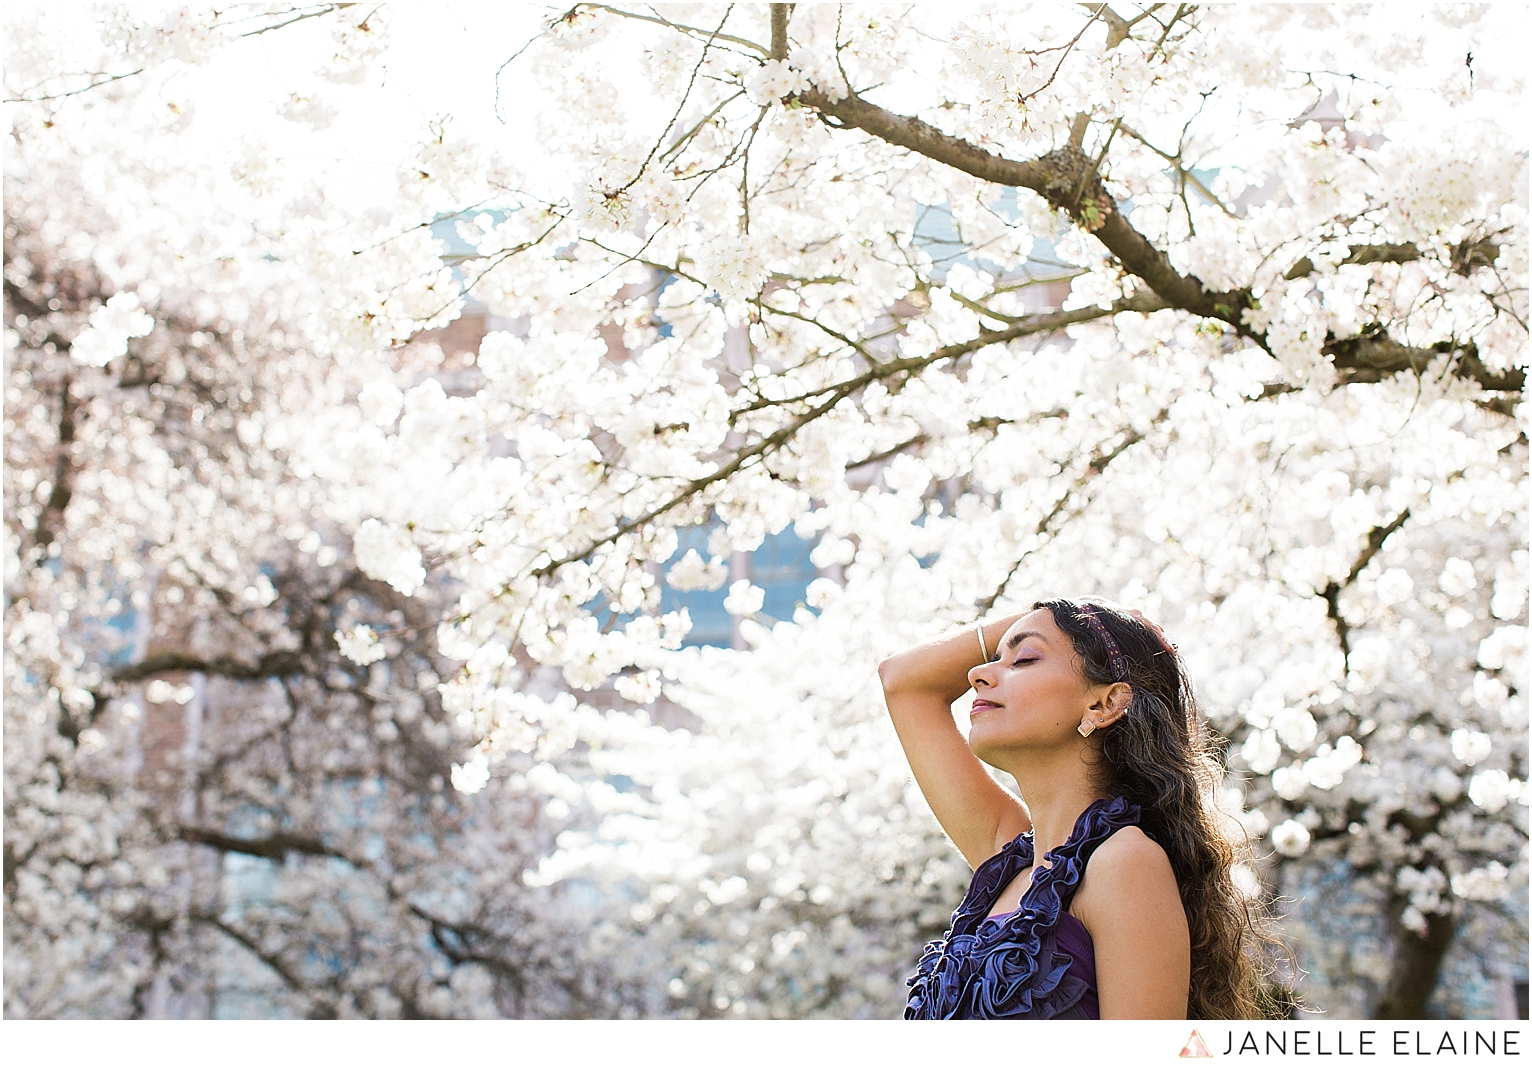 Sufience-Harkirat-spring portrait session-cherry blossoms-uw-seattle photographer janelle elaine-71.jpg